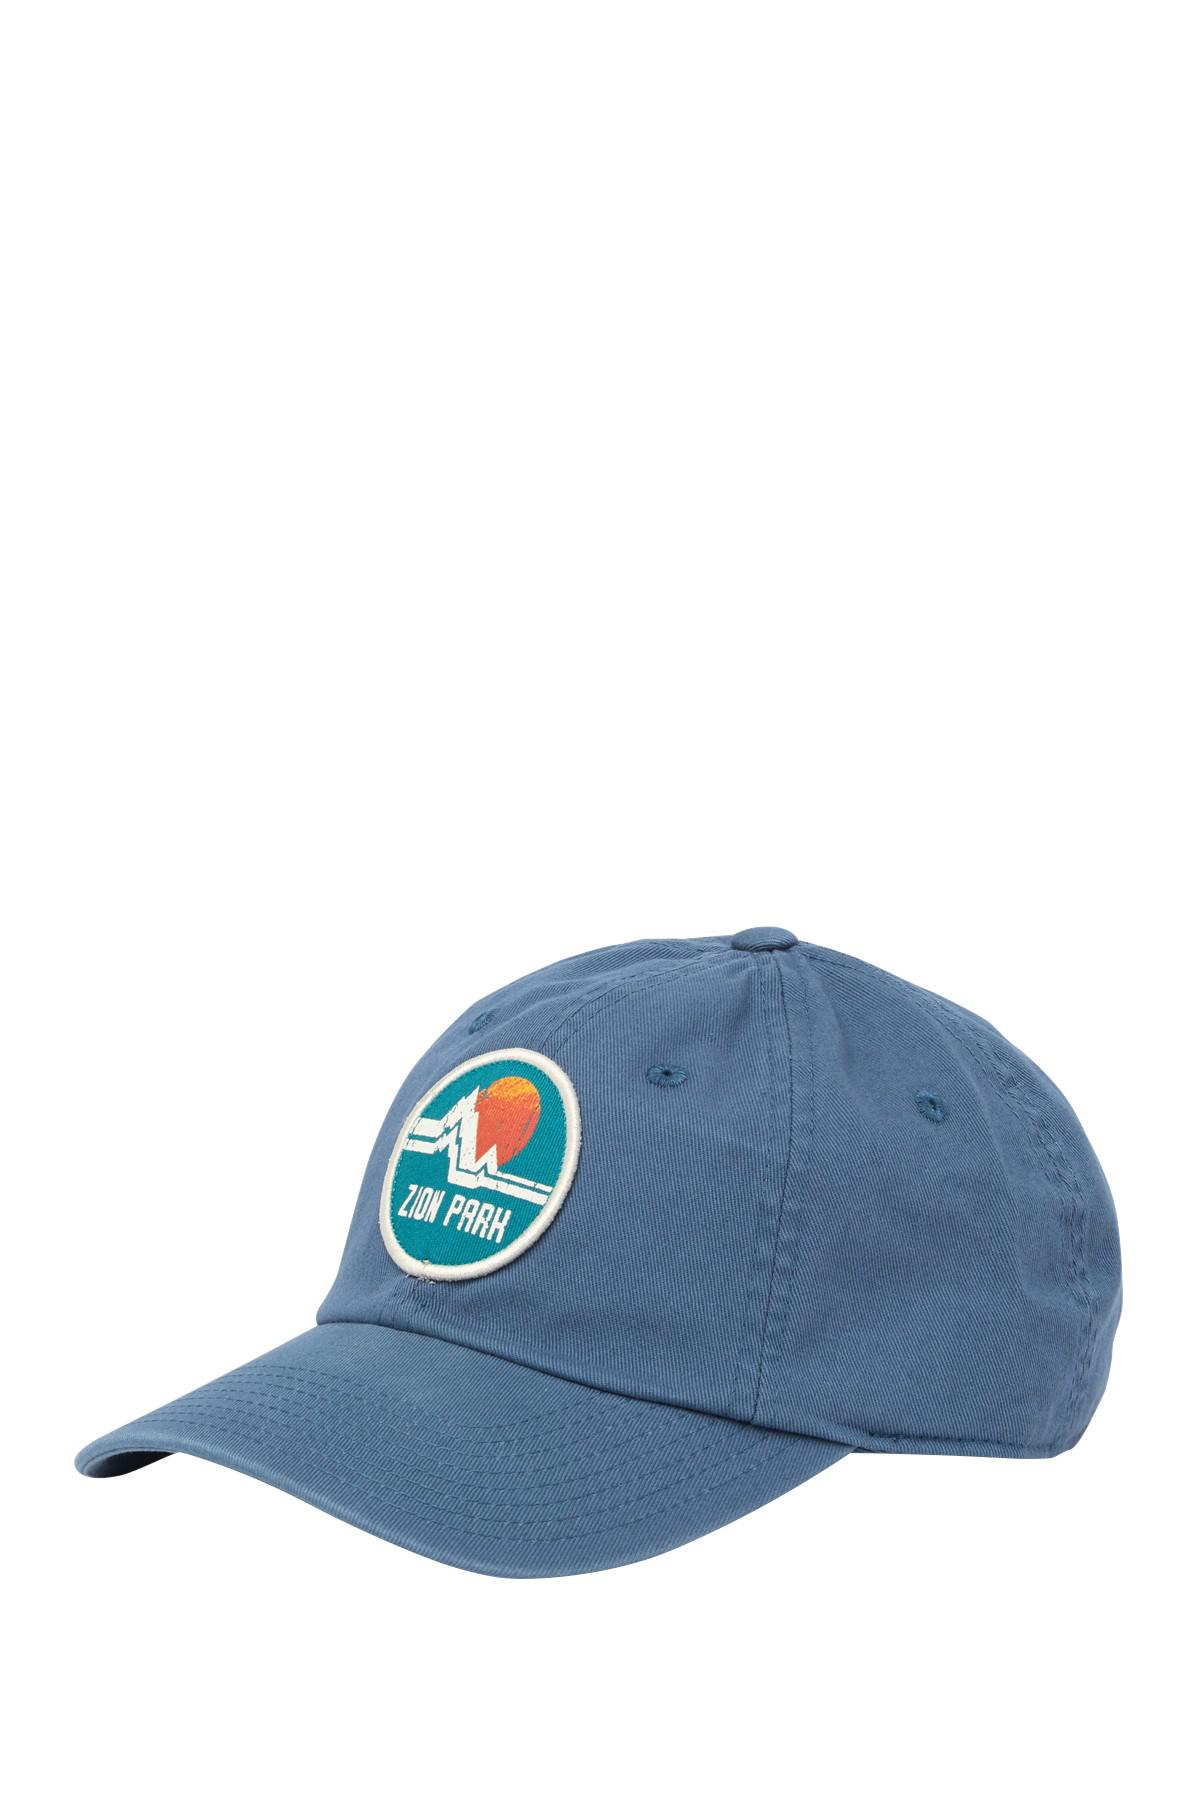 a246e577d Lyst - American Needle Zion National Park Baseball Cap in Blue for Men